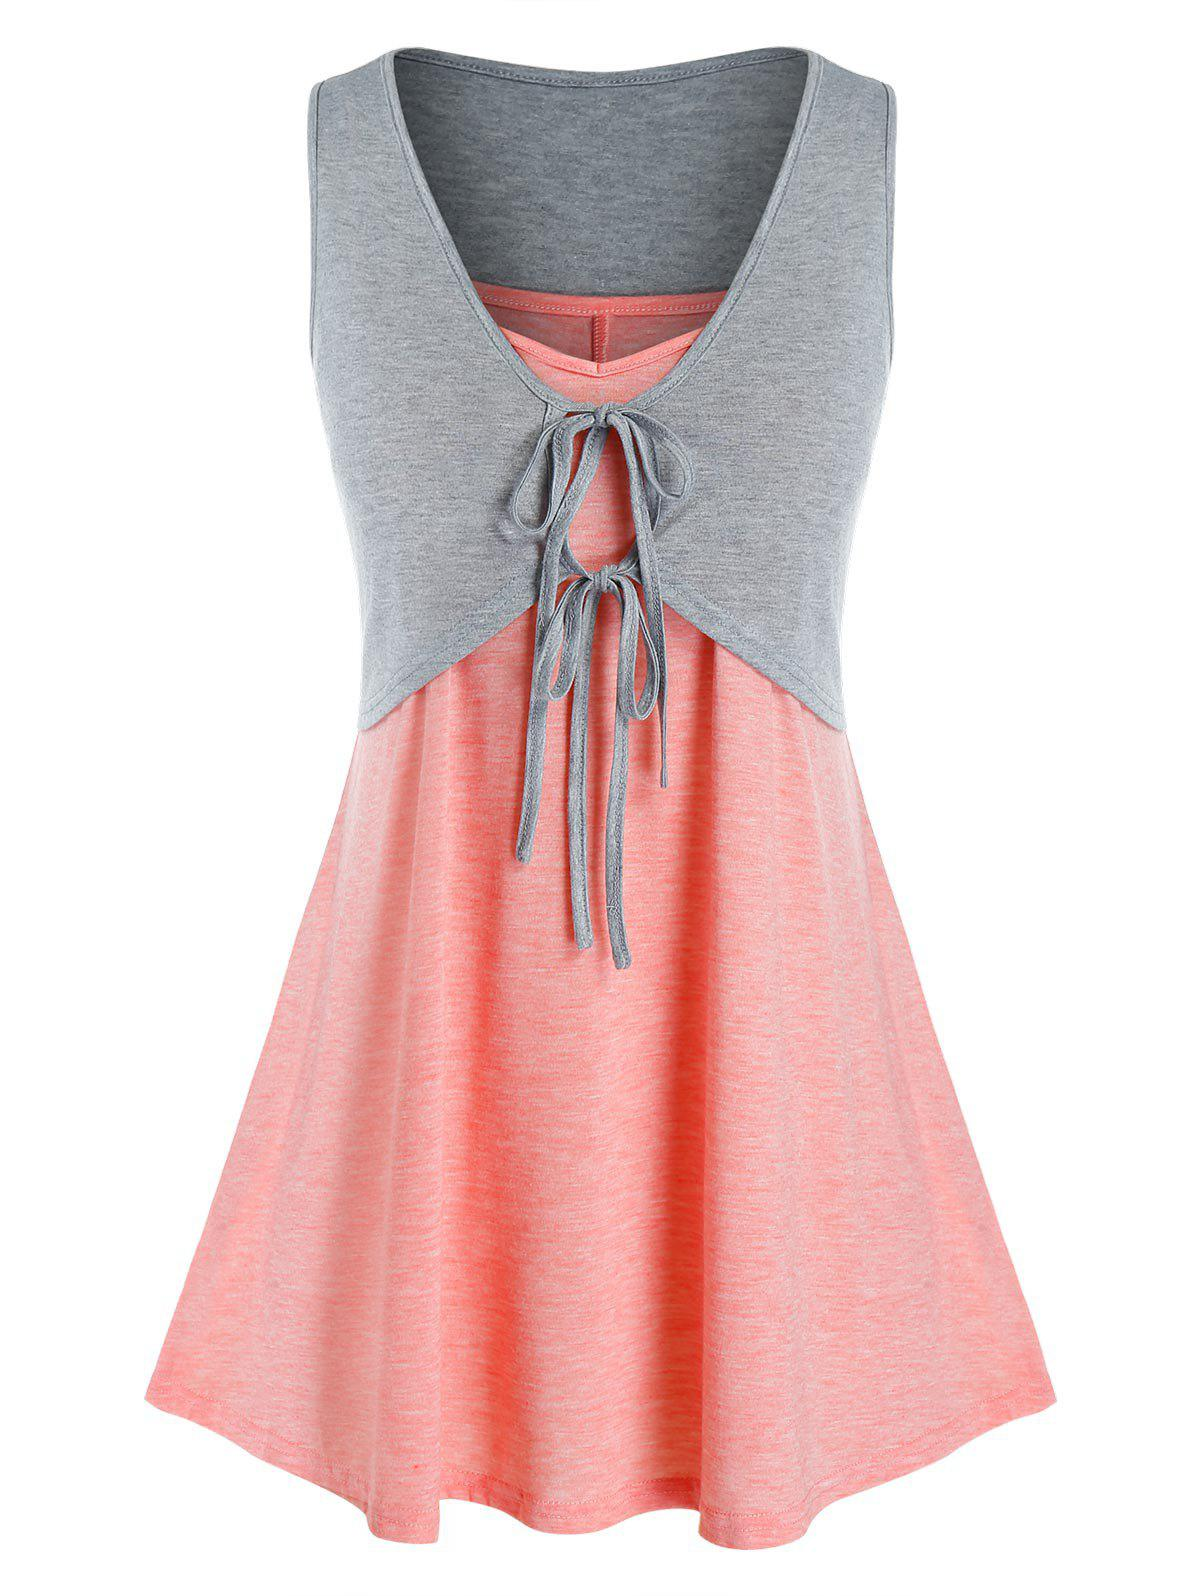 Sale Plus Size Tie Crop Top and Swing Camisole Set